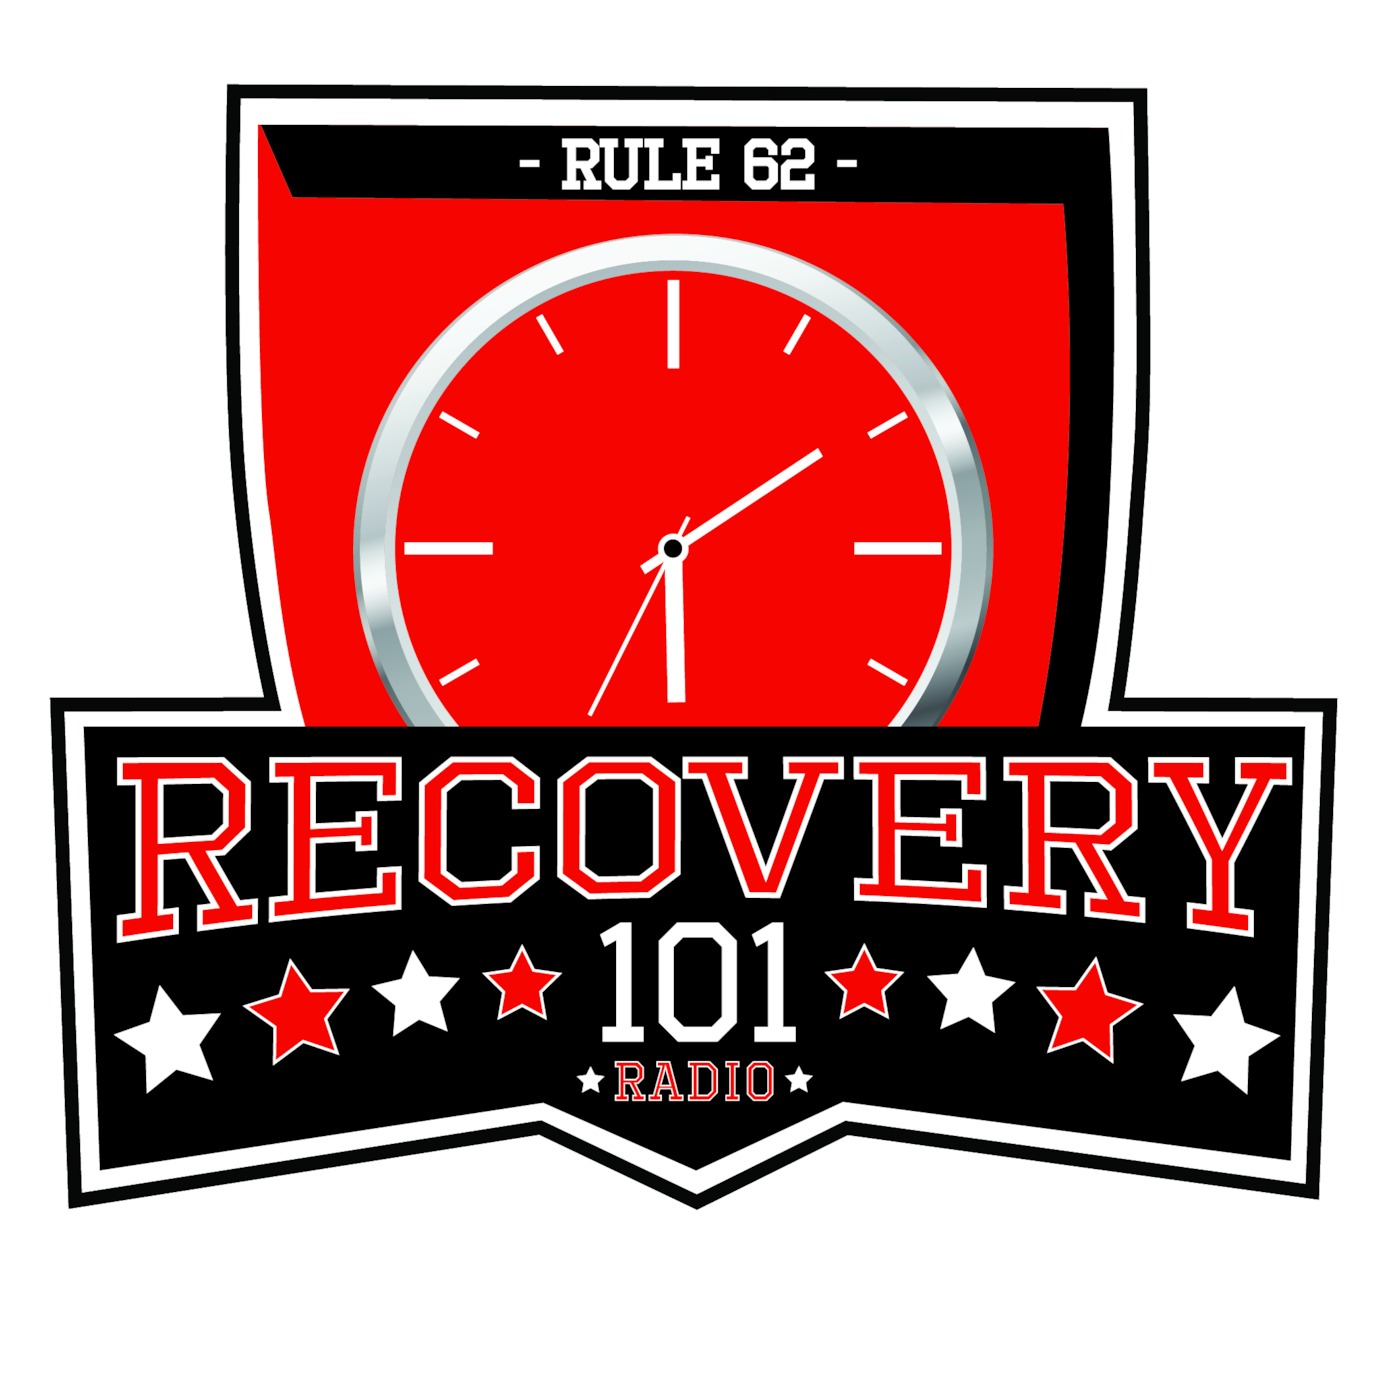 The Recovery 101 Radio Show